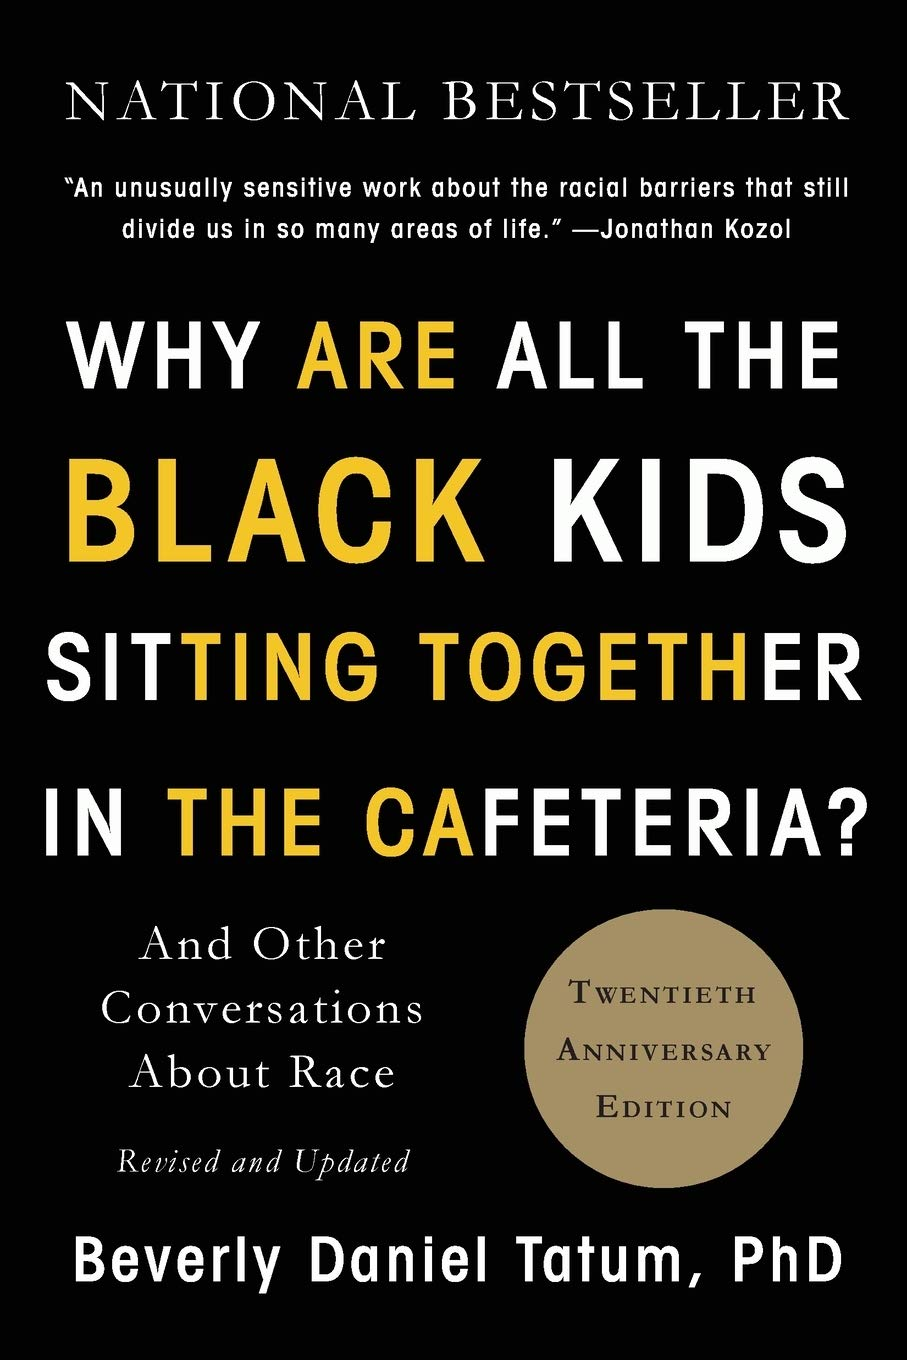 Why Are All the Black Kids Sitting Together in the Cafeteria Beverly Daniel Tatum